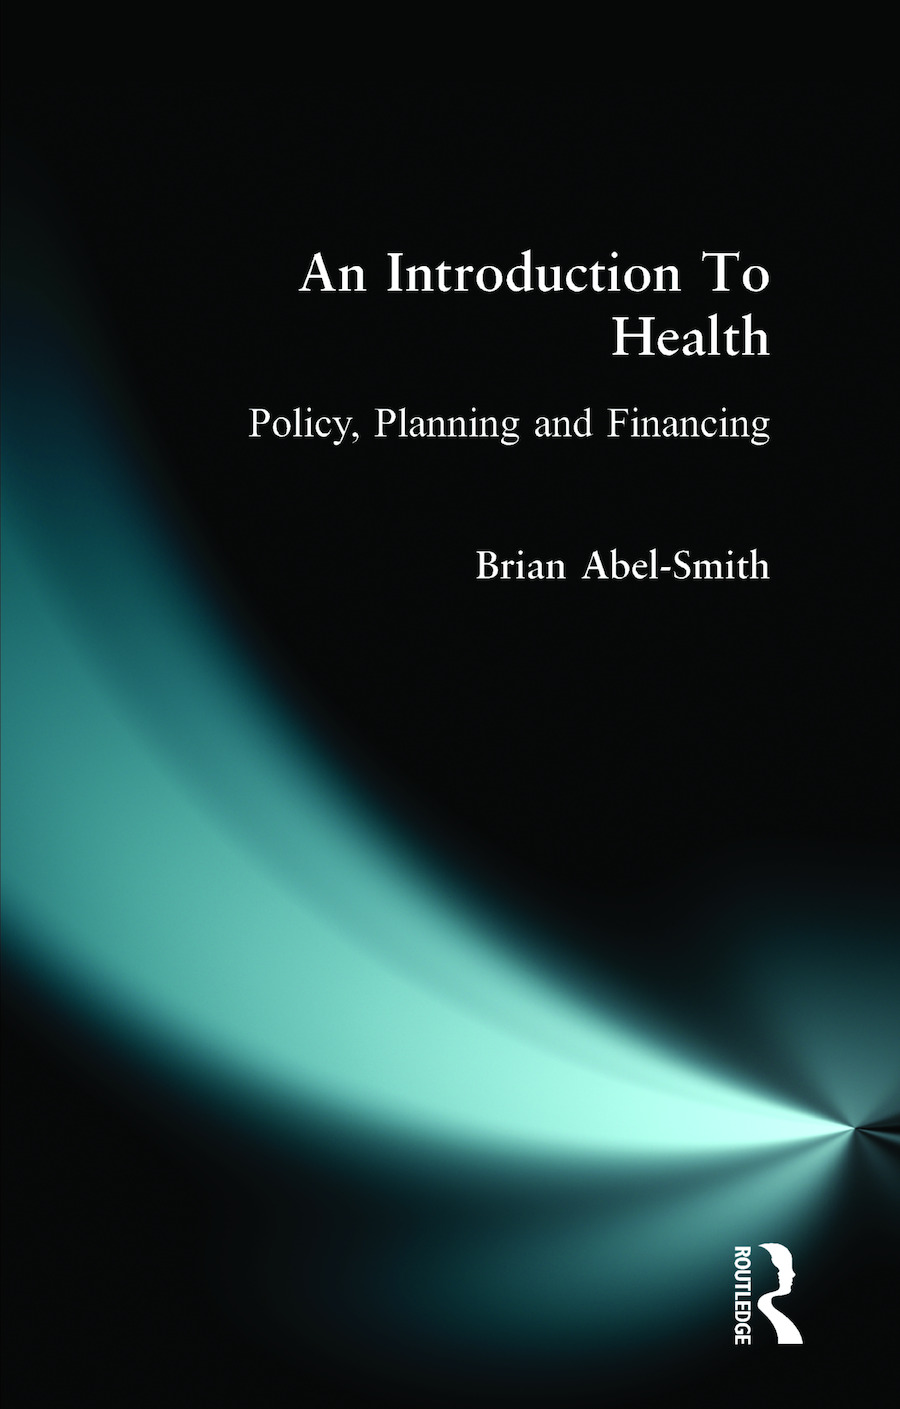 An Introduction To Health